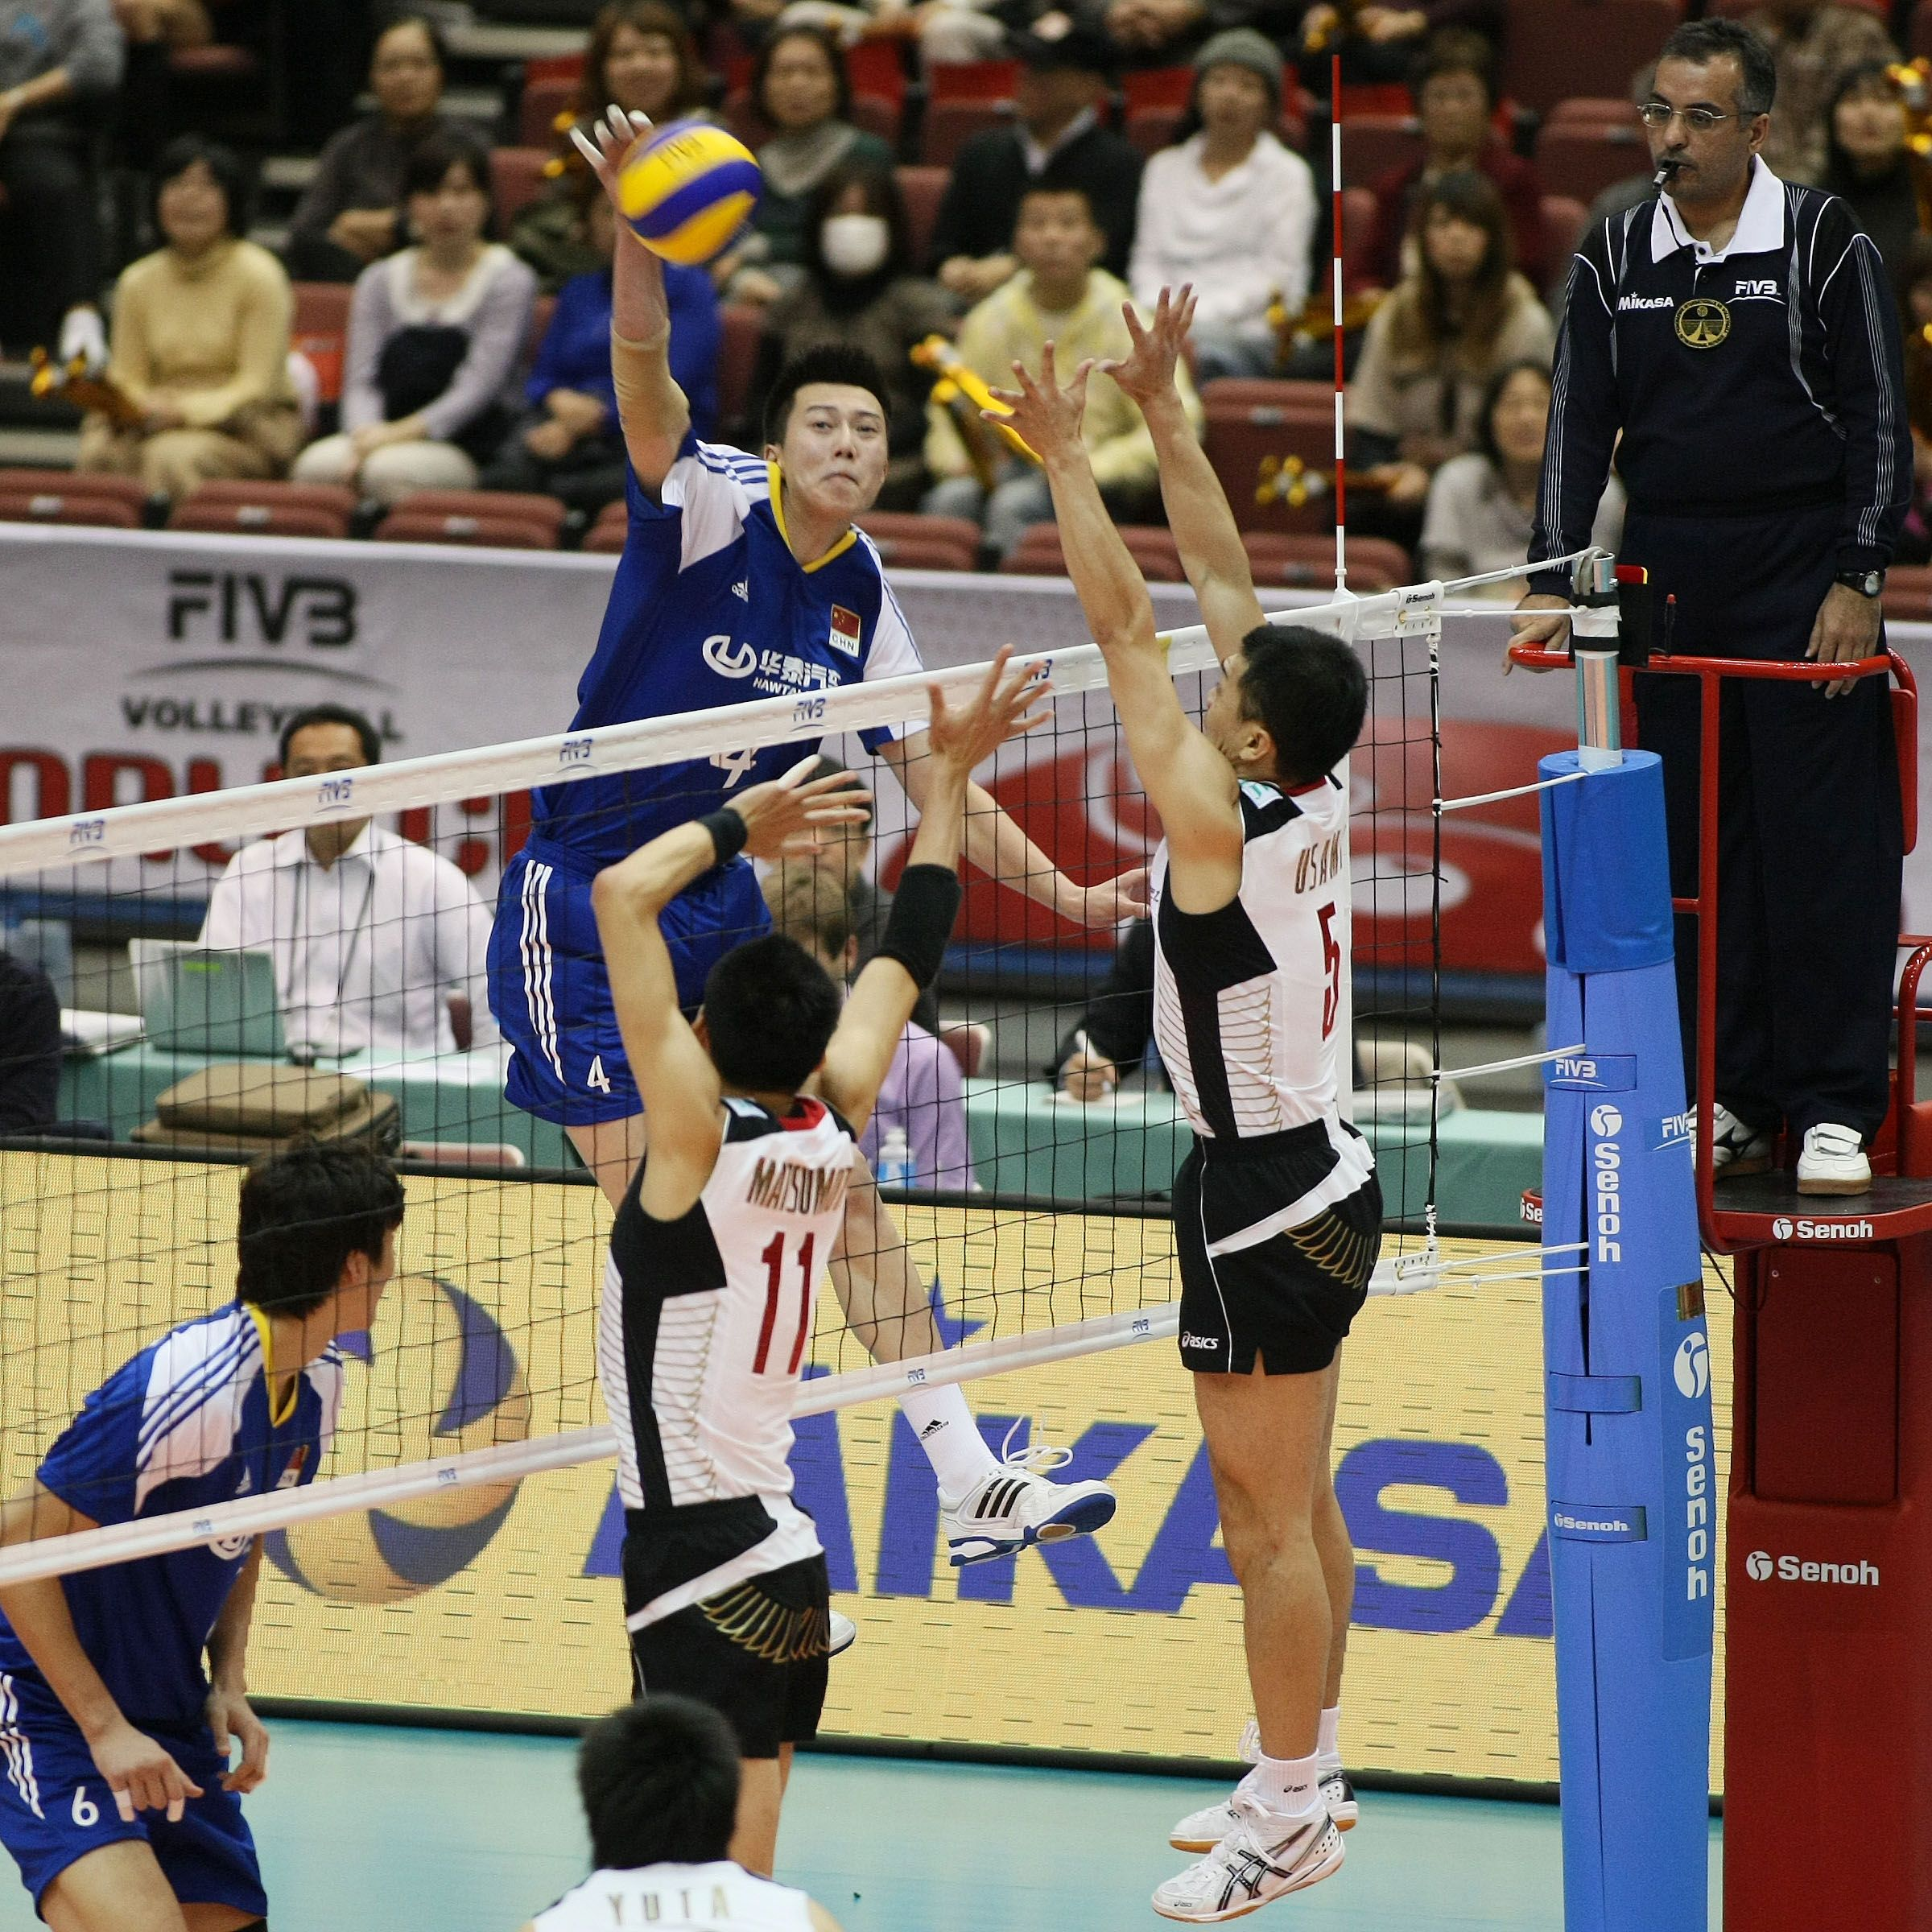 Zhang Chen Being Contrasted By The Block Of Matsumoto 11 And Usami 5 Volleyball Matsumoto Chen